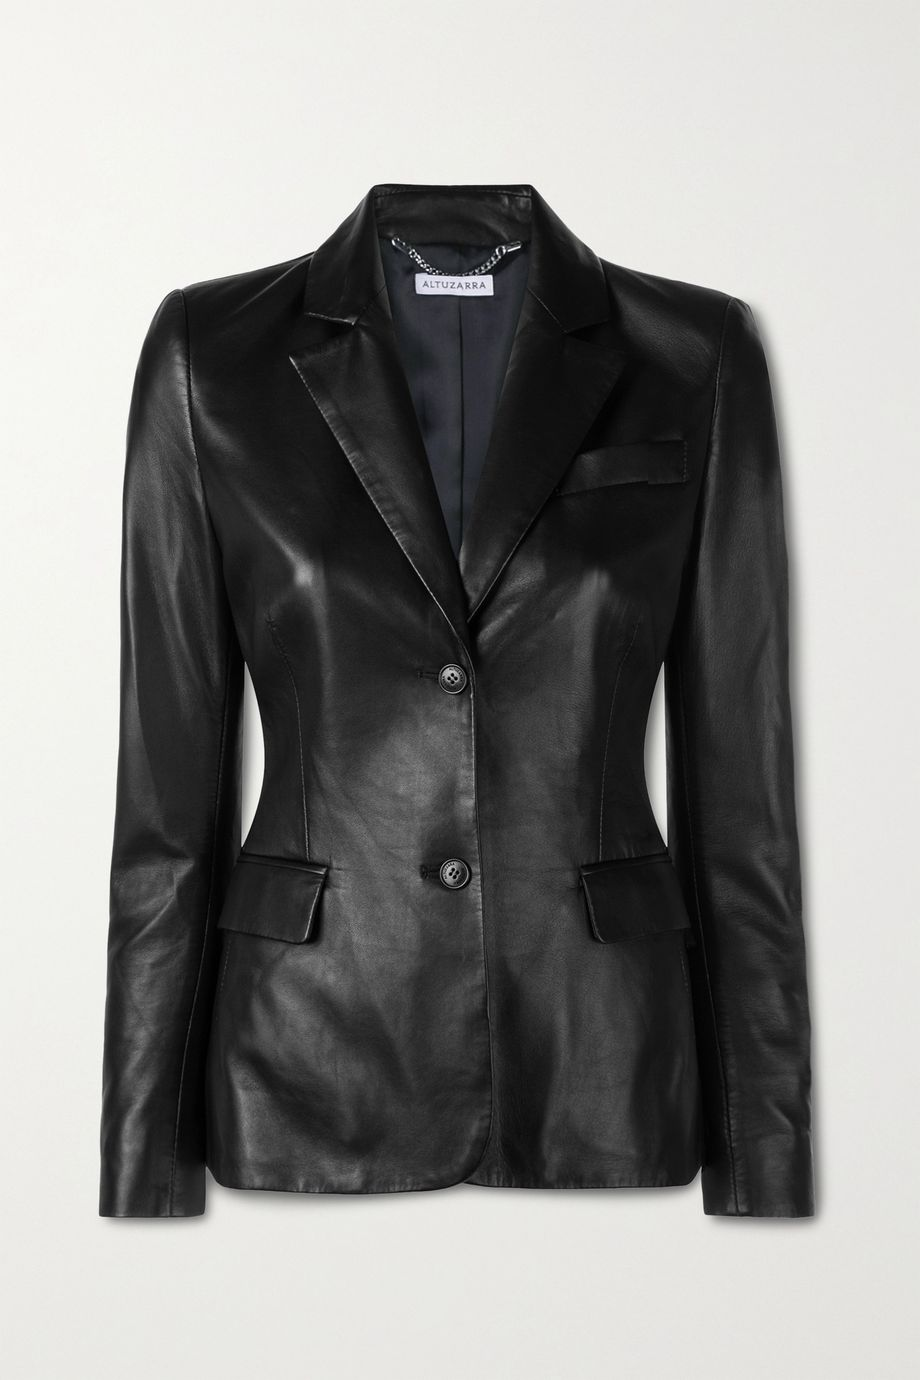 Altuzarra Egan leather blazer